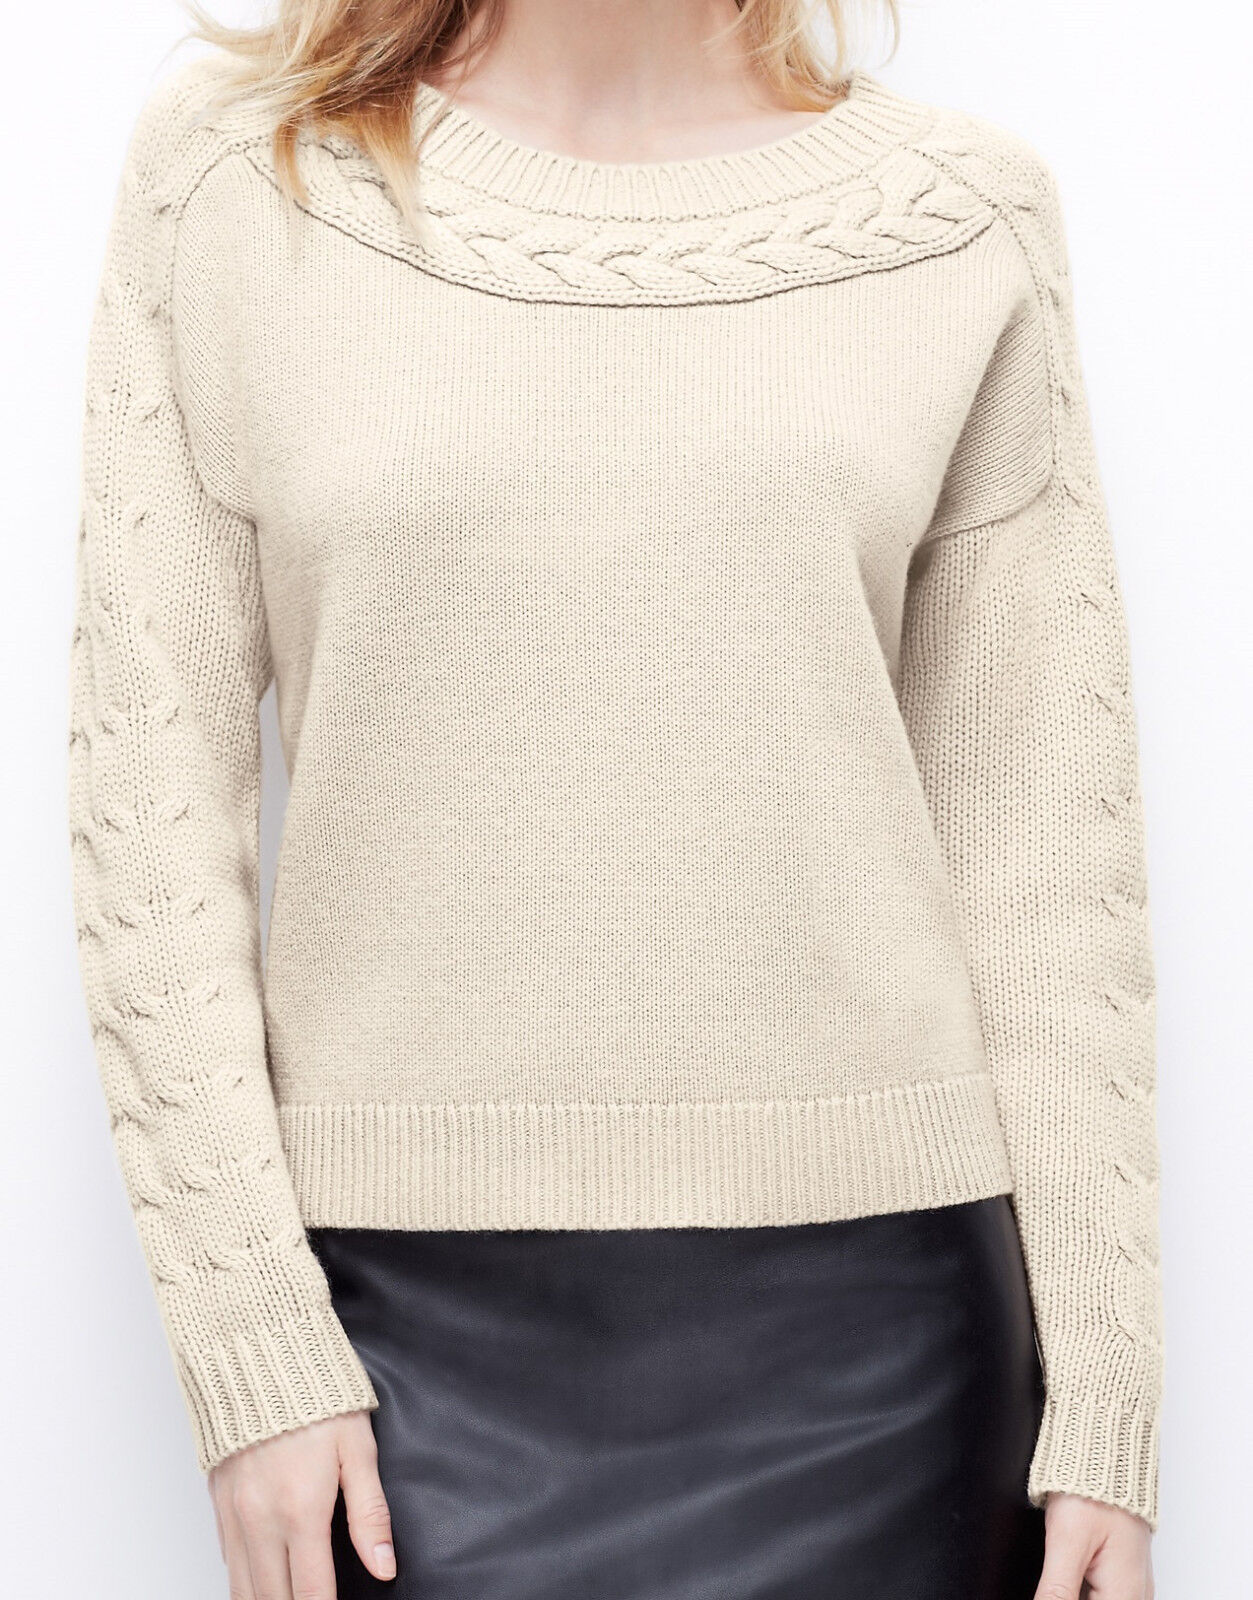 NWT  98 Ann Taylor Cable Trim Wool Cashmere Sweater Size XS